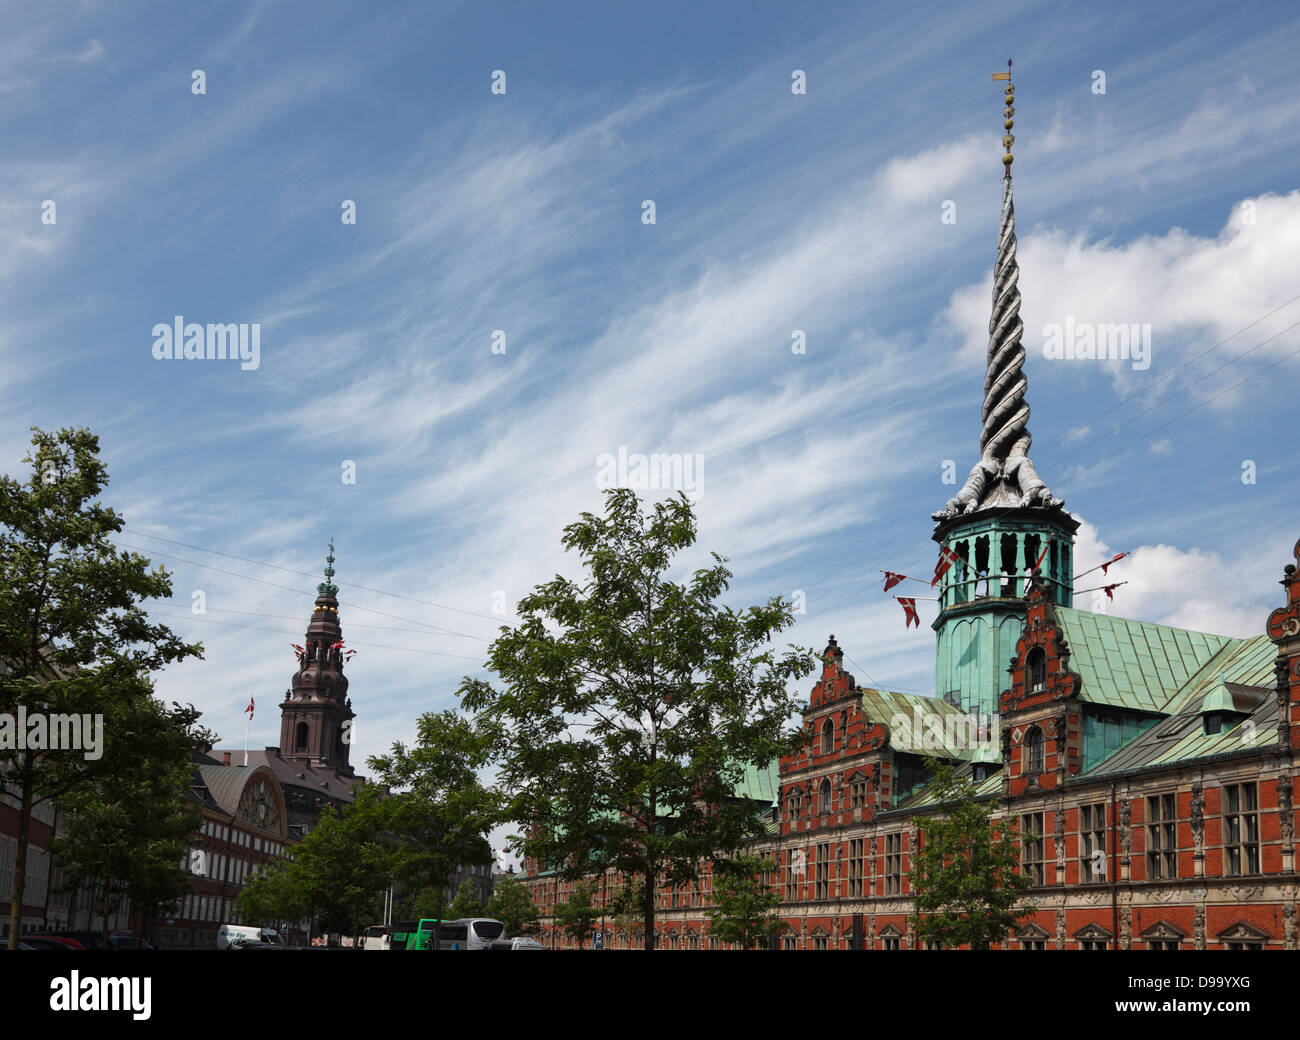 The old stock exchange and the Christiansborg Palace in the background, both flying the Danish flag from the turret - Stock Image